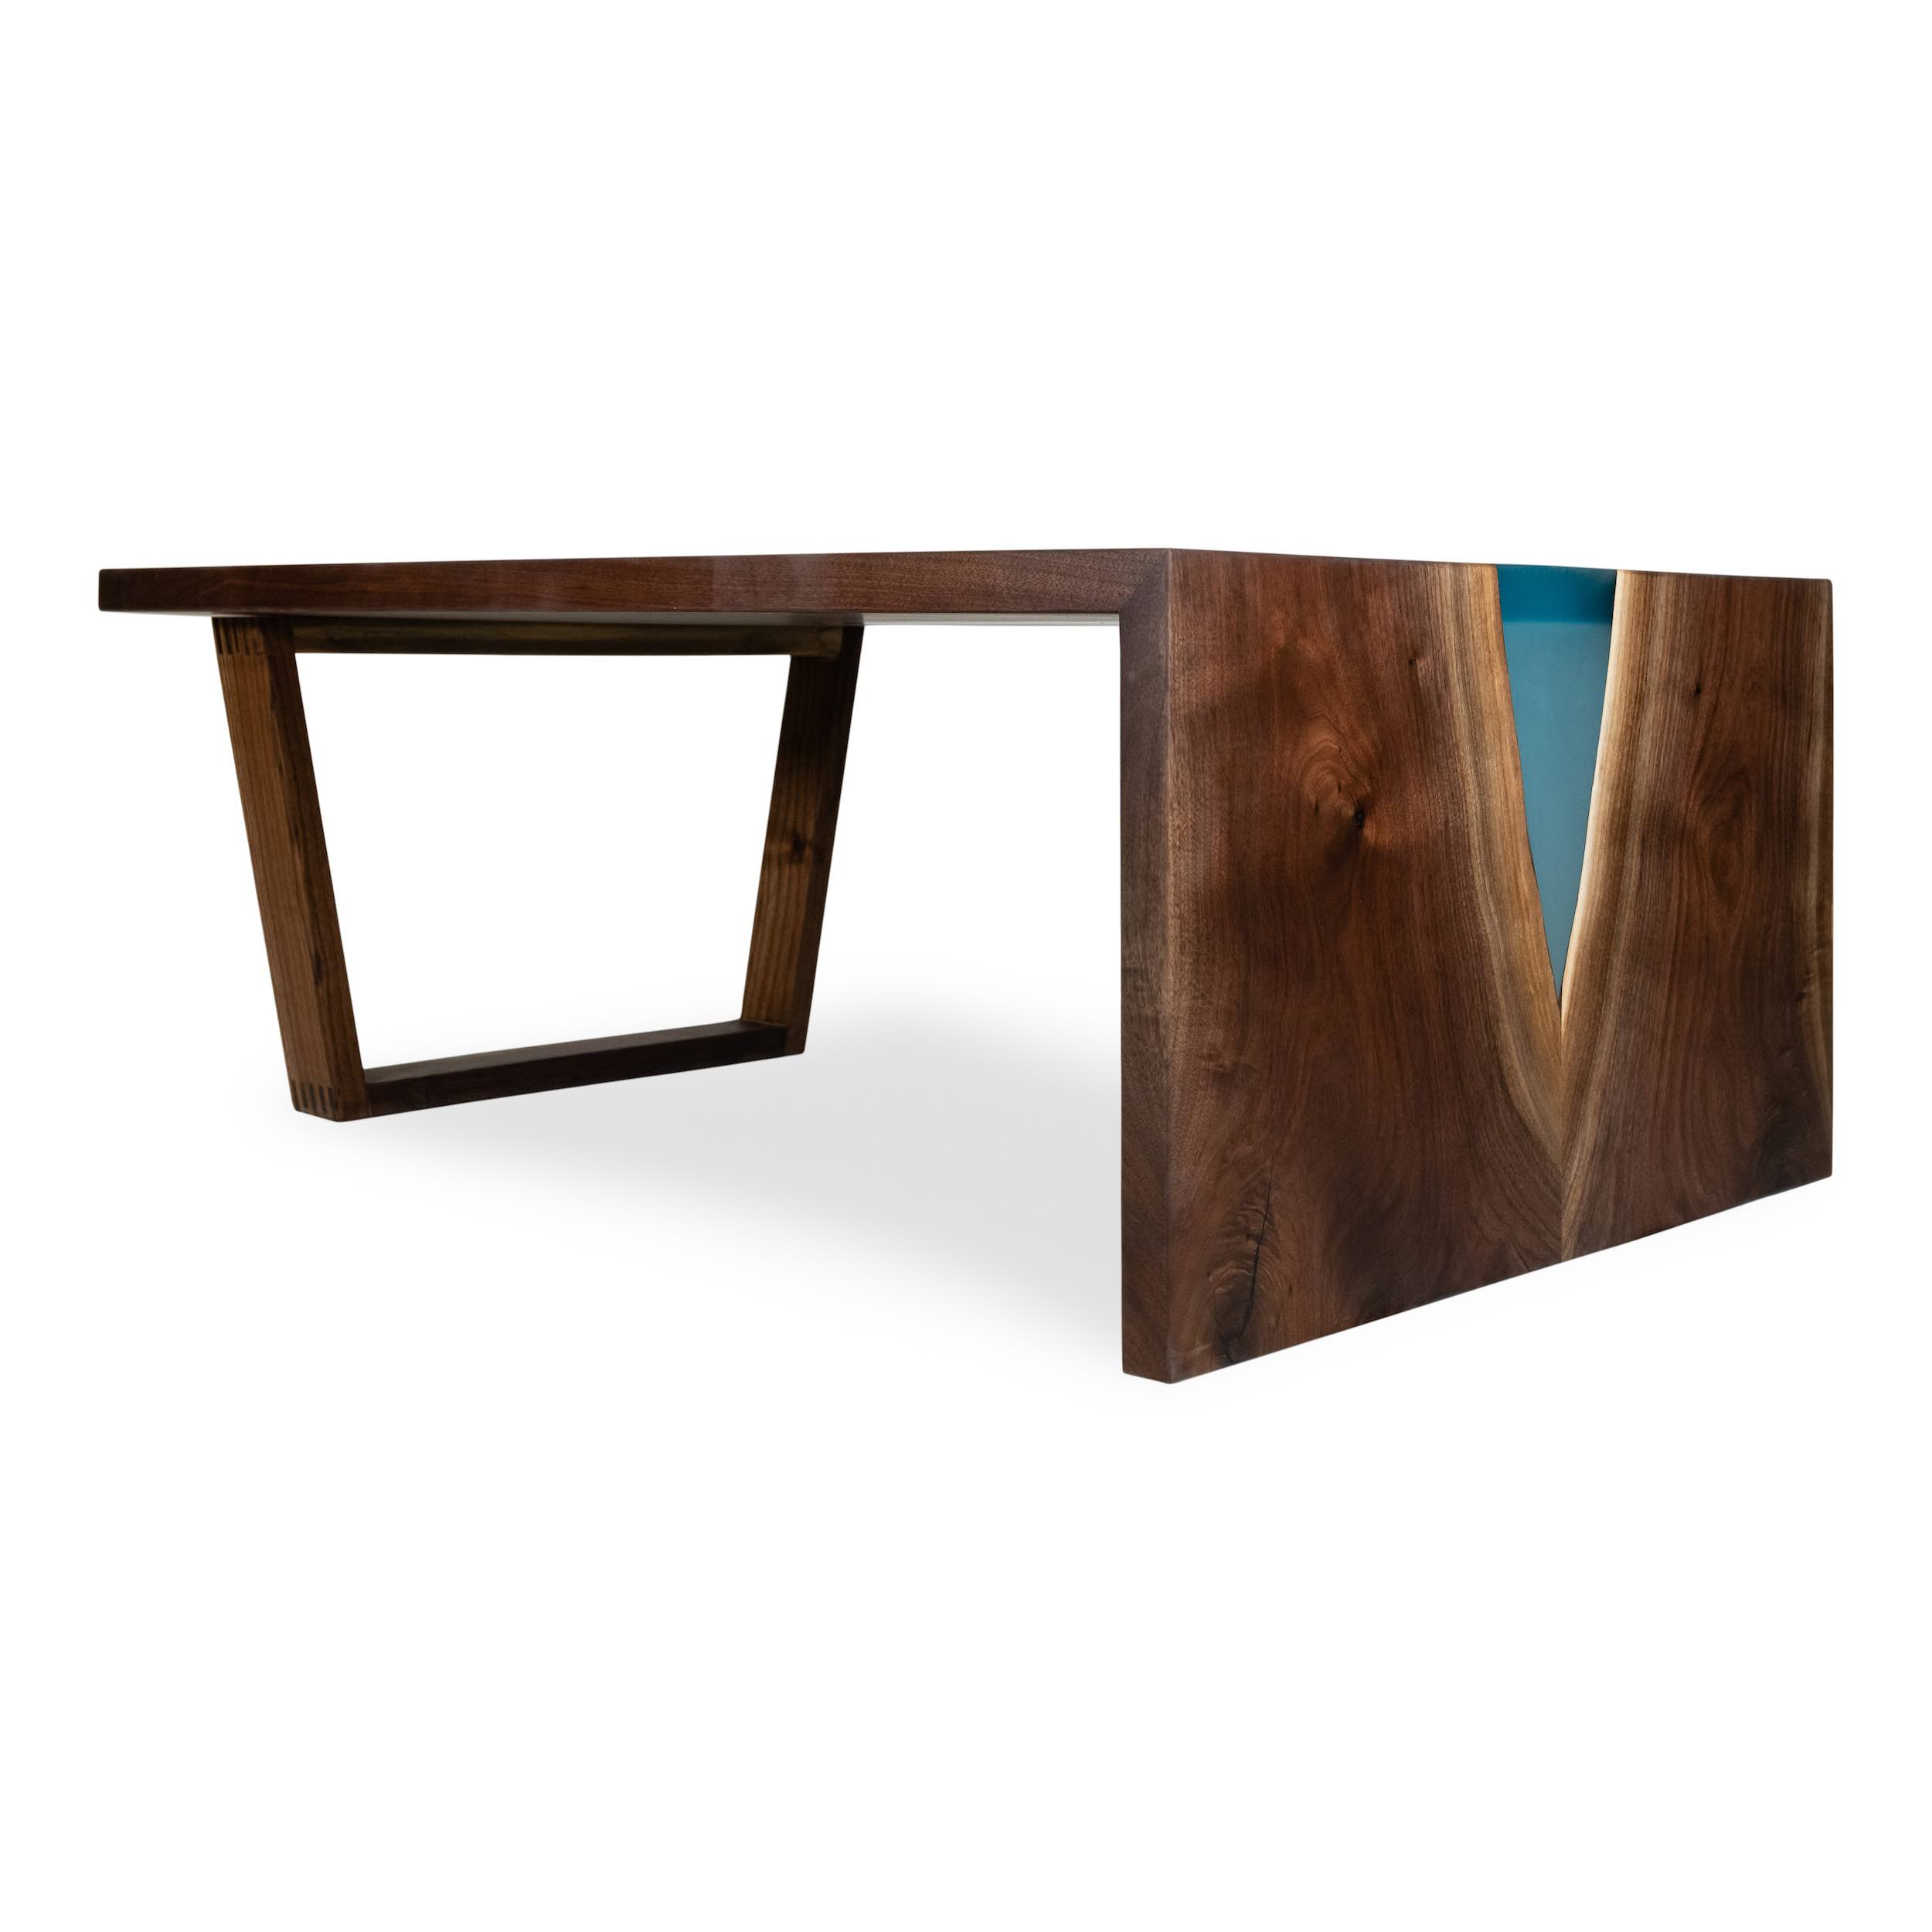 Woodcraft_Furniture_ResinWaterfallCoffeeTable-3-1.jpeg